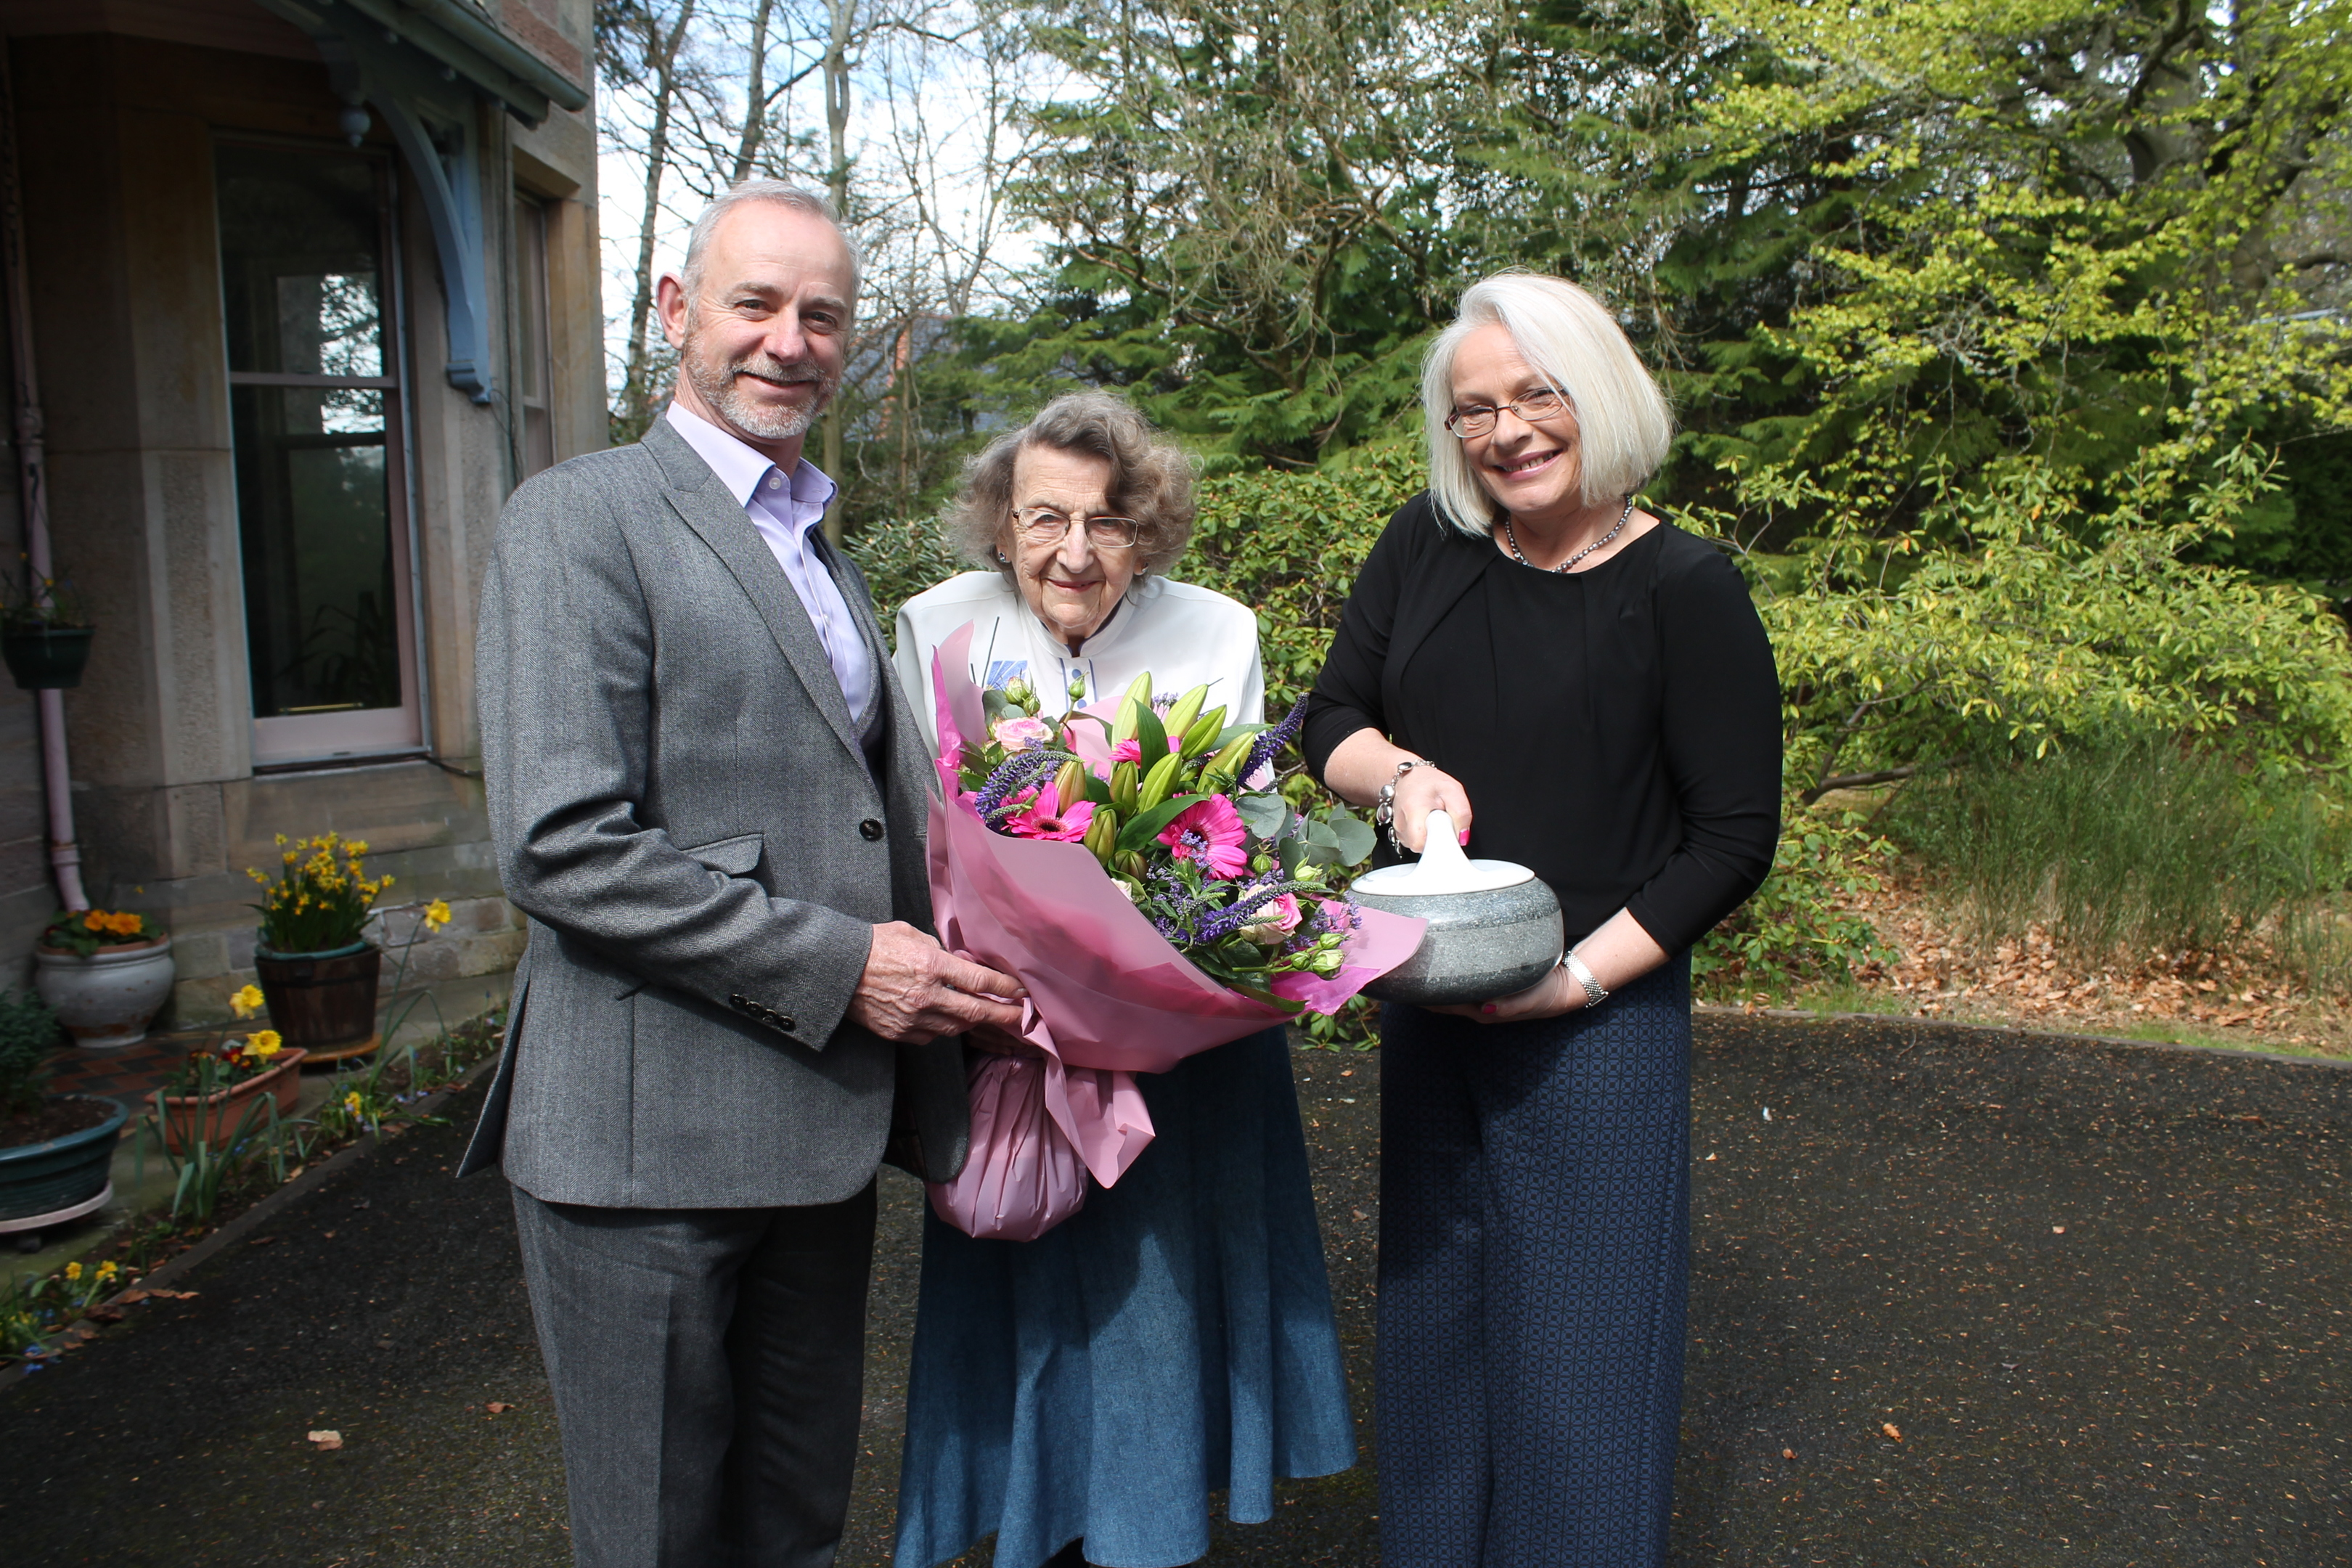 Chair of Inverness Ice Centre, Tom Pendreigh, Mrs Dorothy Hadley, and Inverness Ice Centre's commercial manager, Jane Fraser.